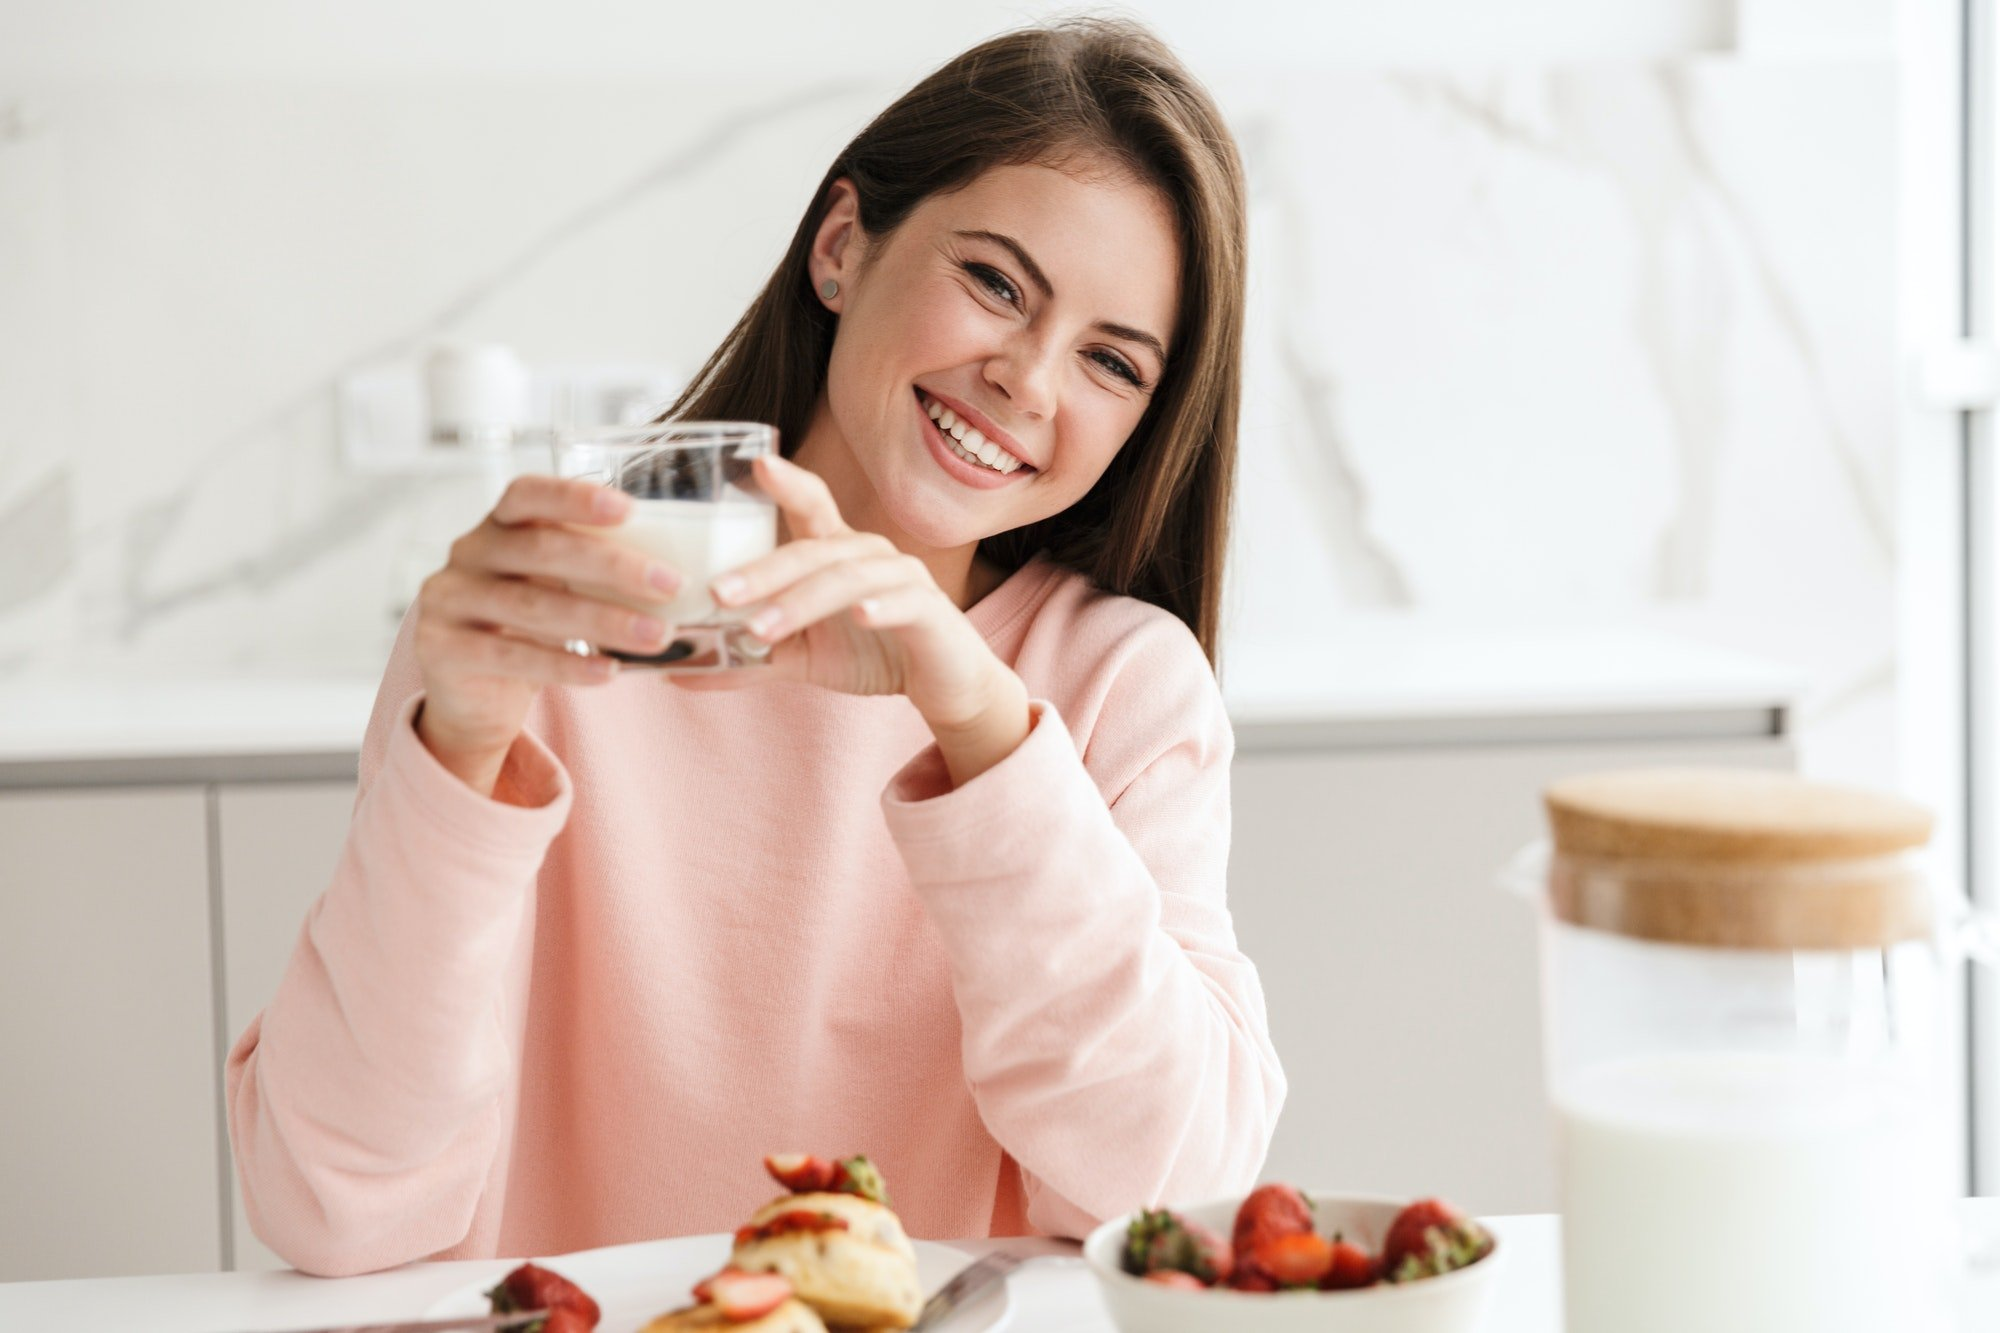 Beautiful smiling young girl having tasty healthy breakfast